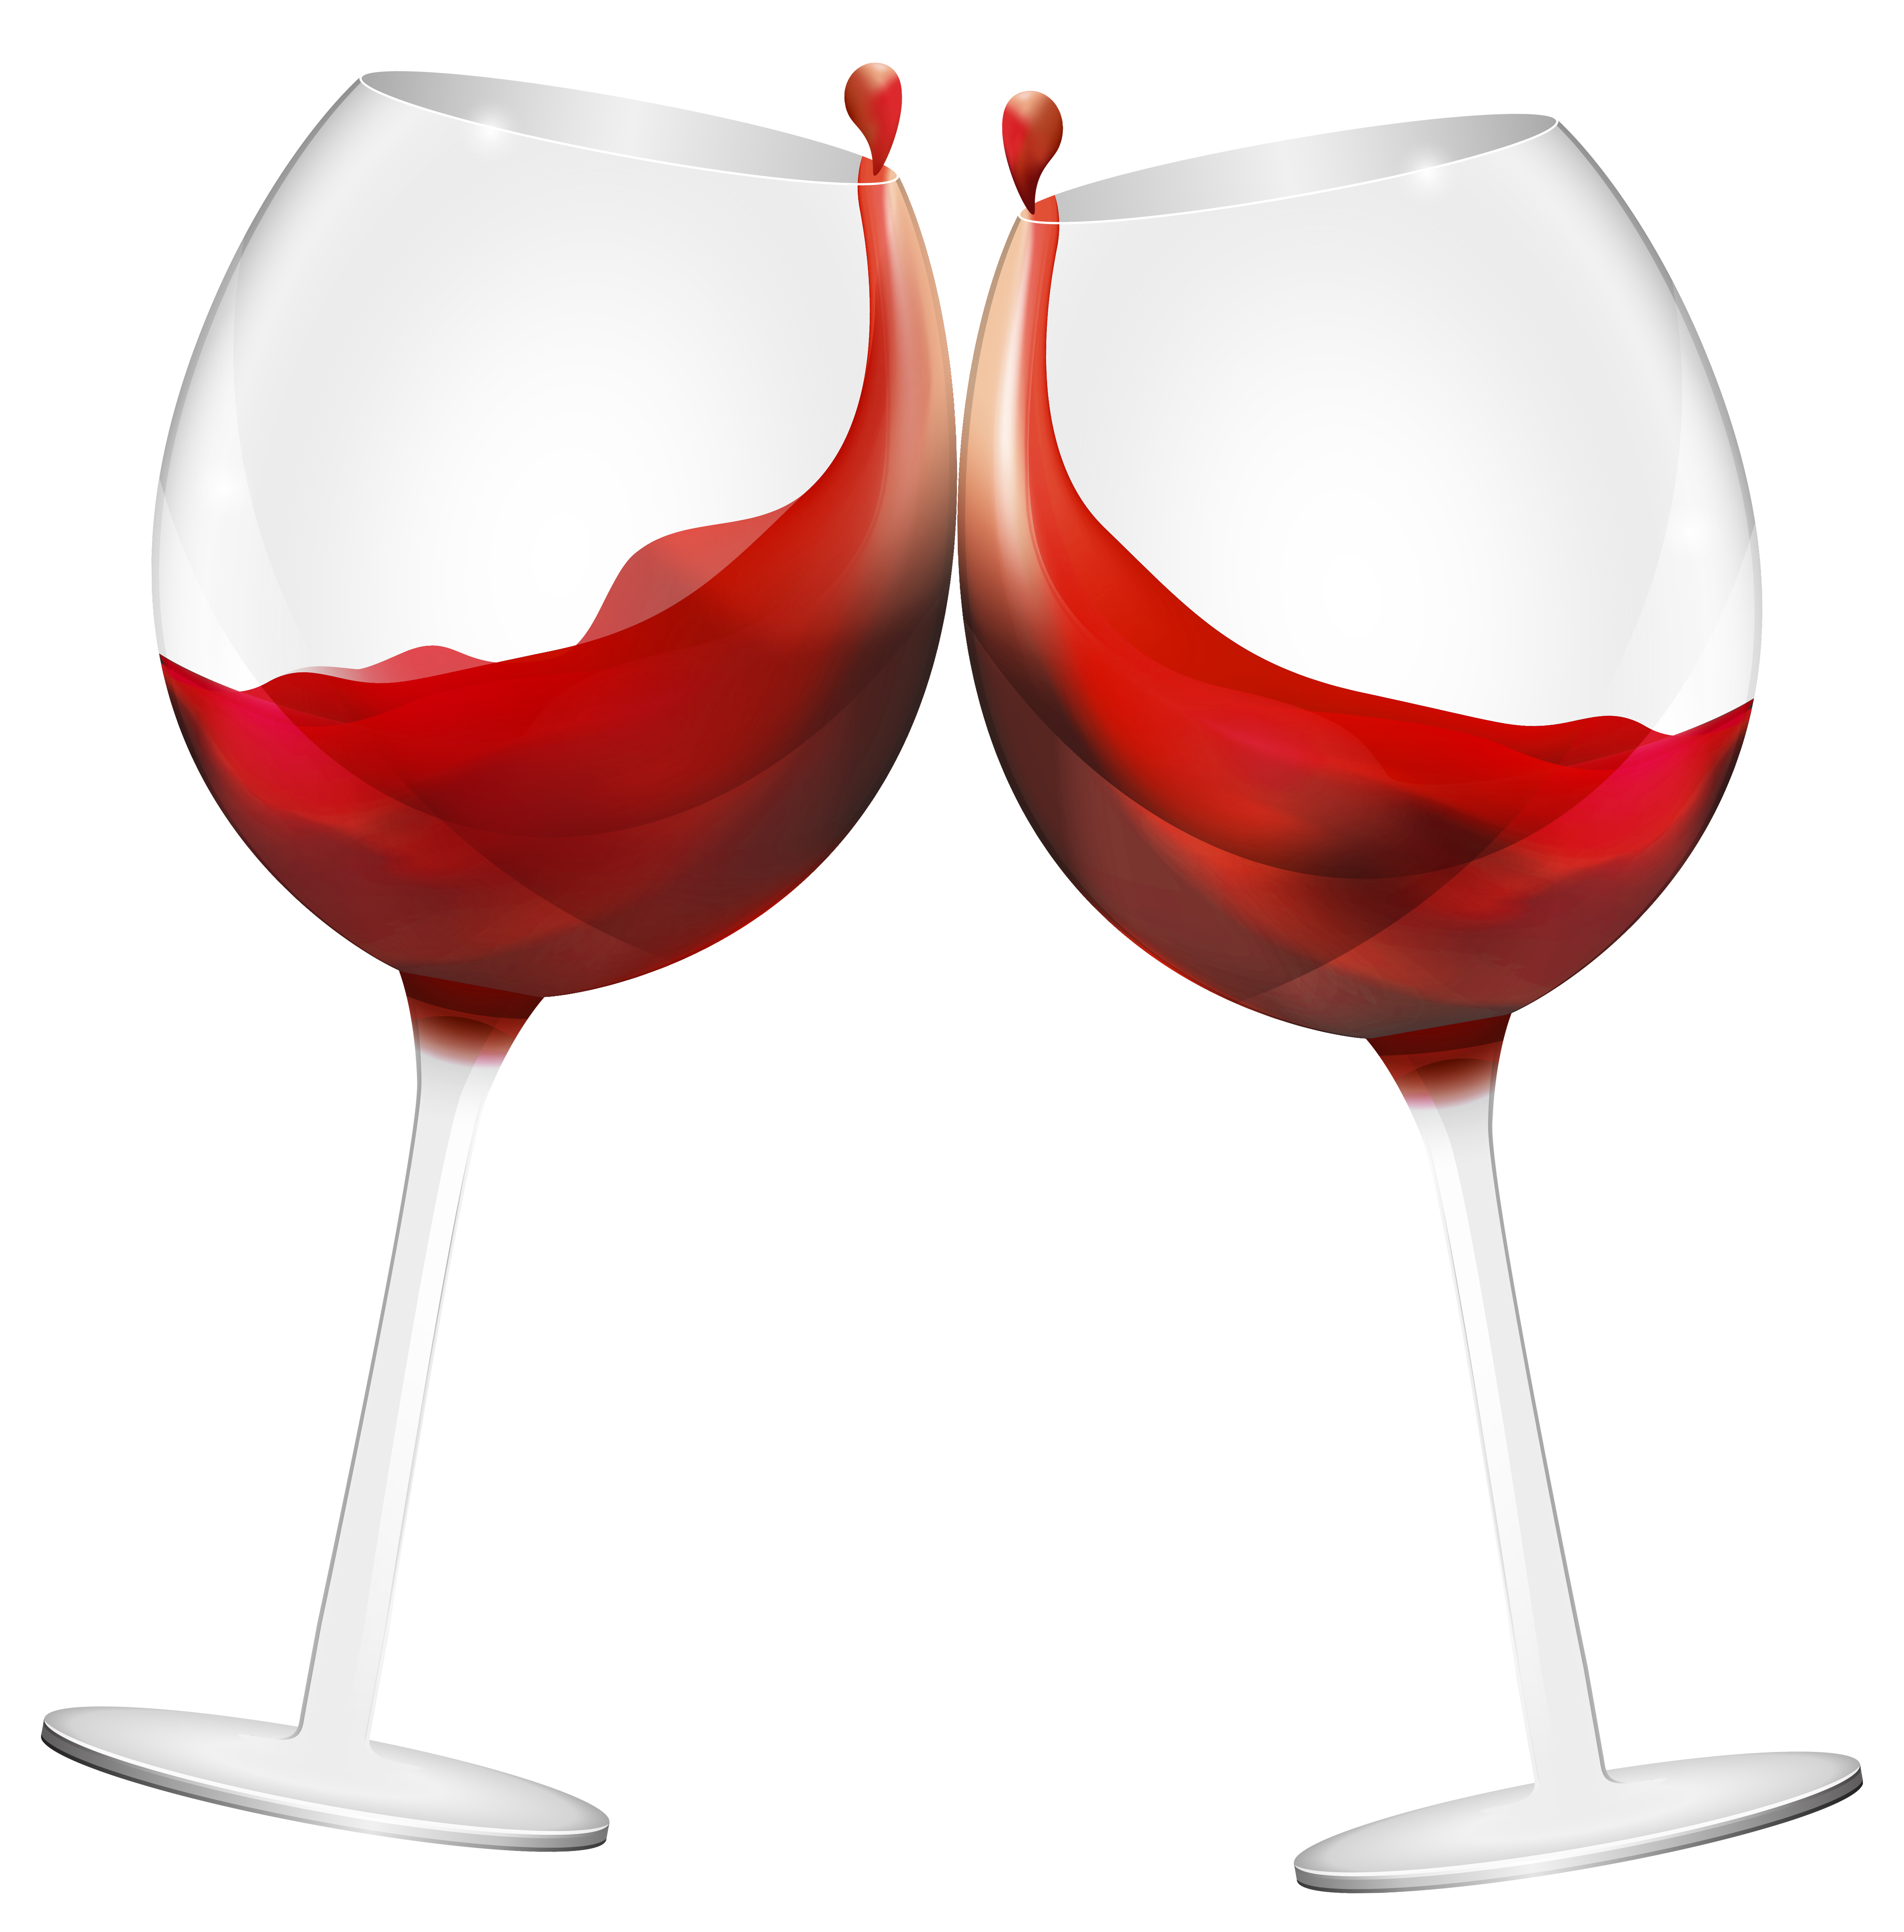 Wine Glass Free Clipart.